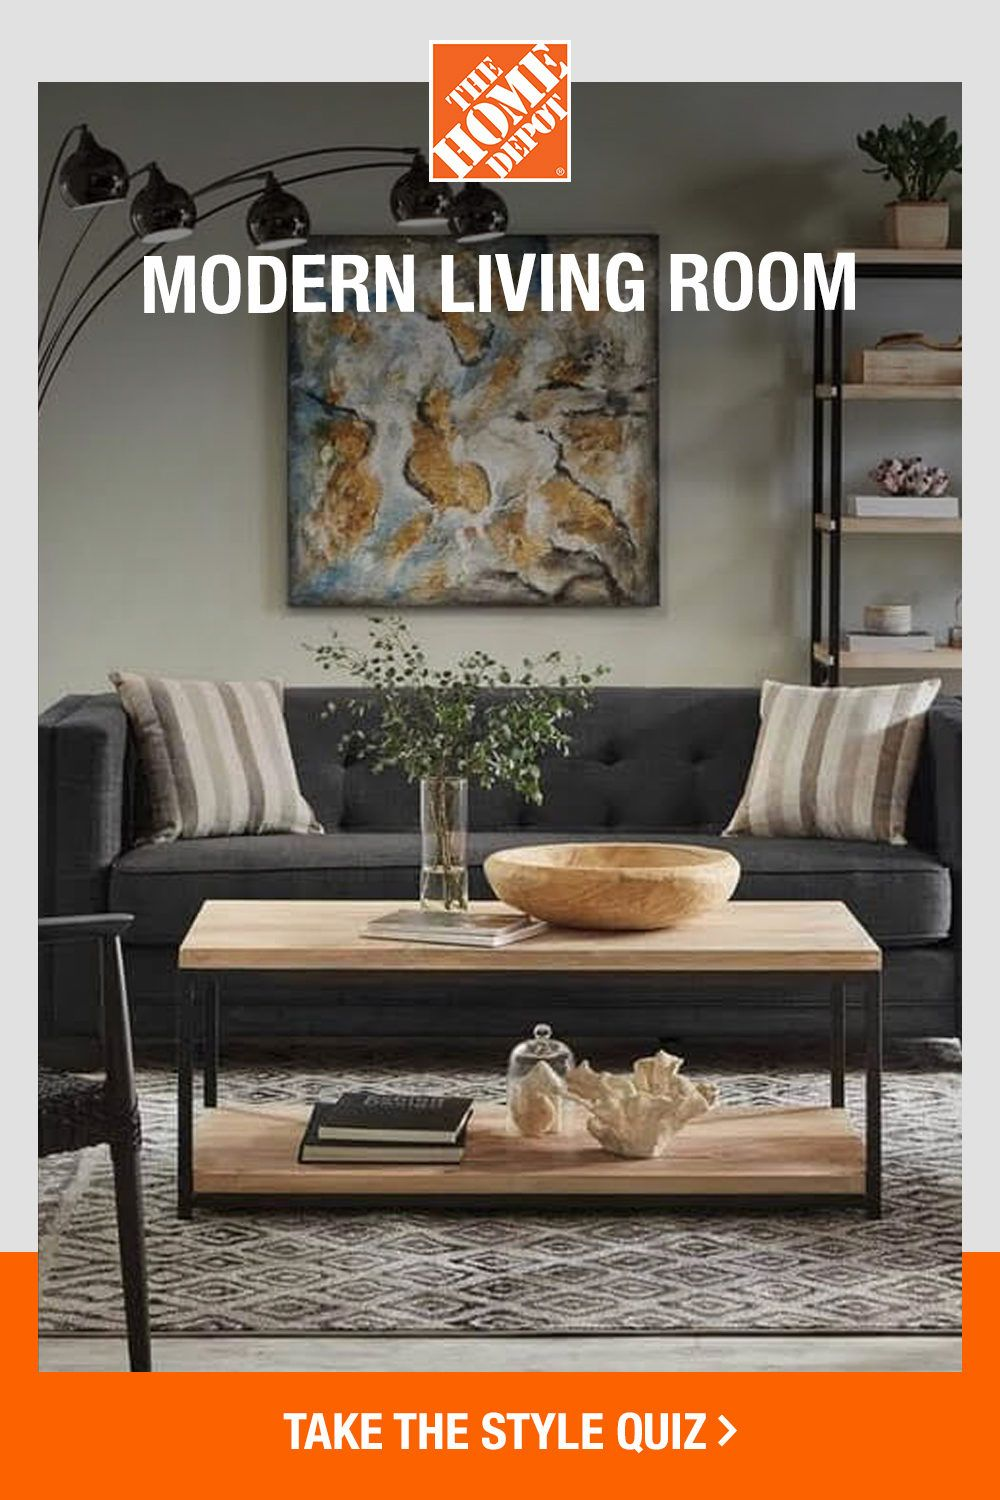 Learn How To Master A Modern Living Room With The Home Depot Style Quiz.   Living Room Modern, Decorating A New Home, Modern Living Room